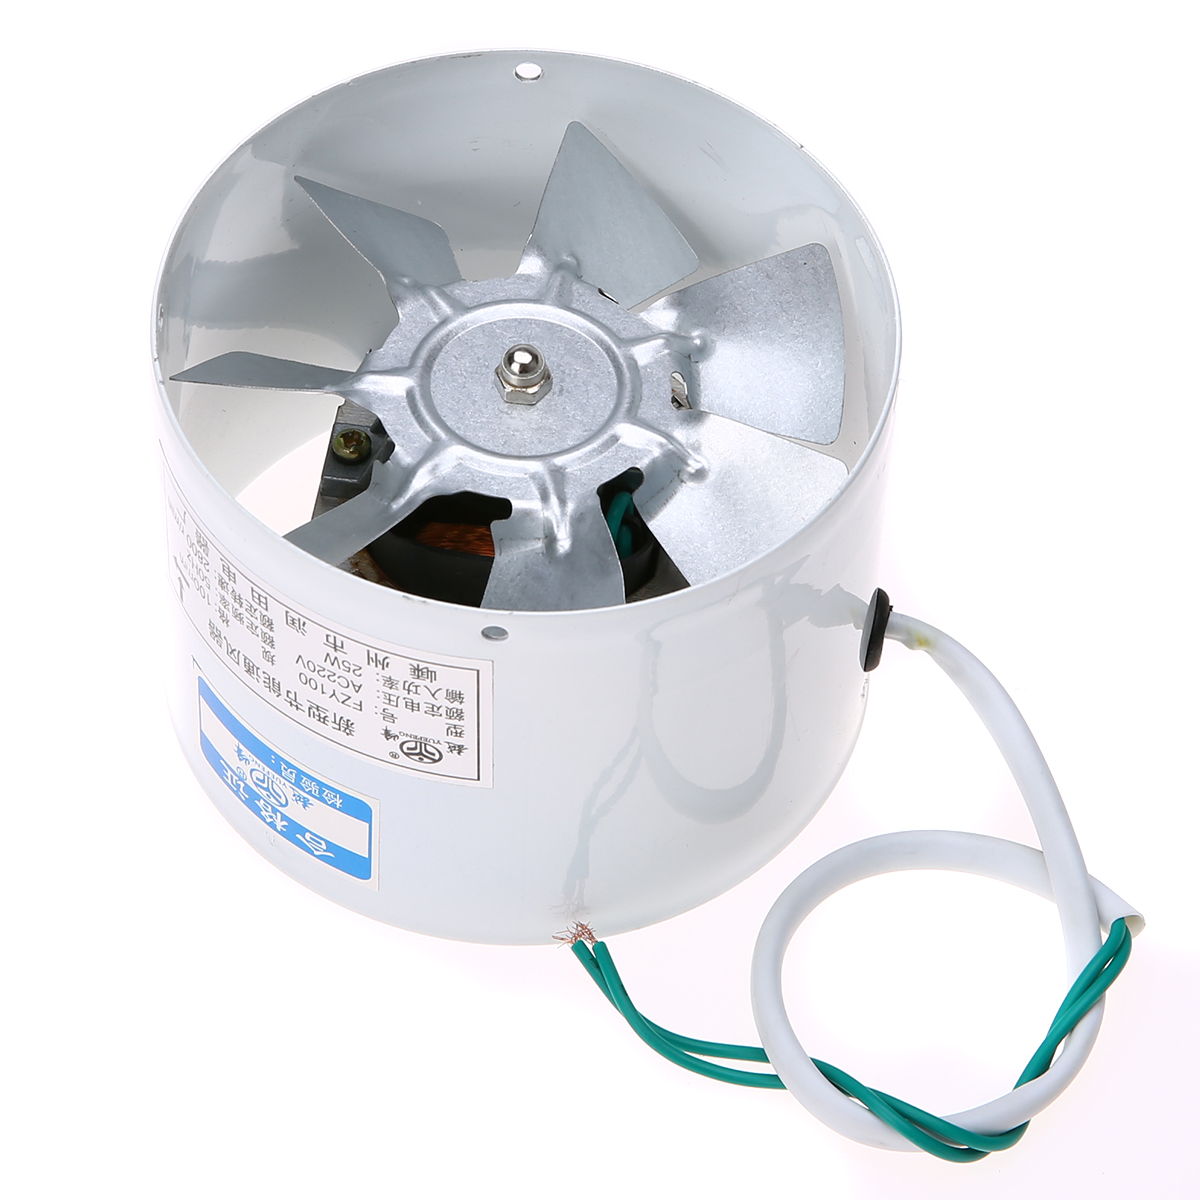 MAYITR 4'' Inline Ducting Vent Fan 2800R/Min Exhaust Blower Home Air Filter Vent  Fans 220V 25W High Speed Quiet small current motor protector for small home appliances like air dryer dehumidifier fan and exhaust fan